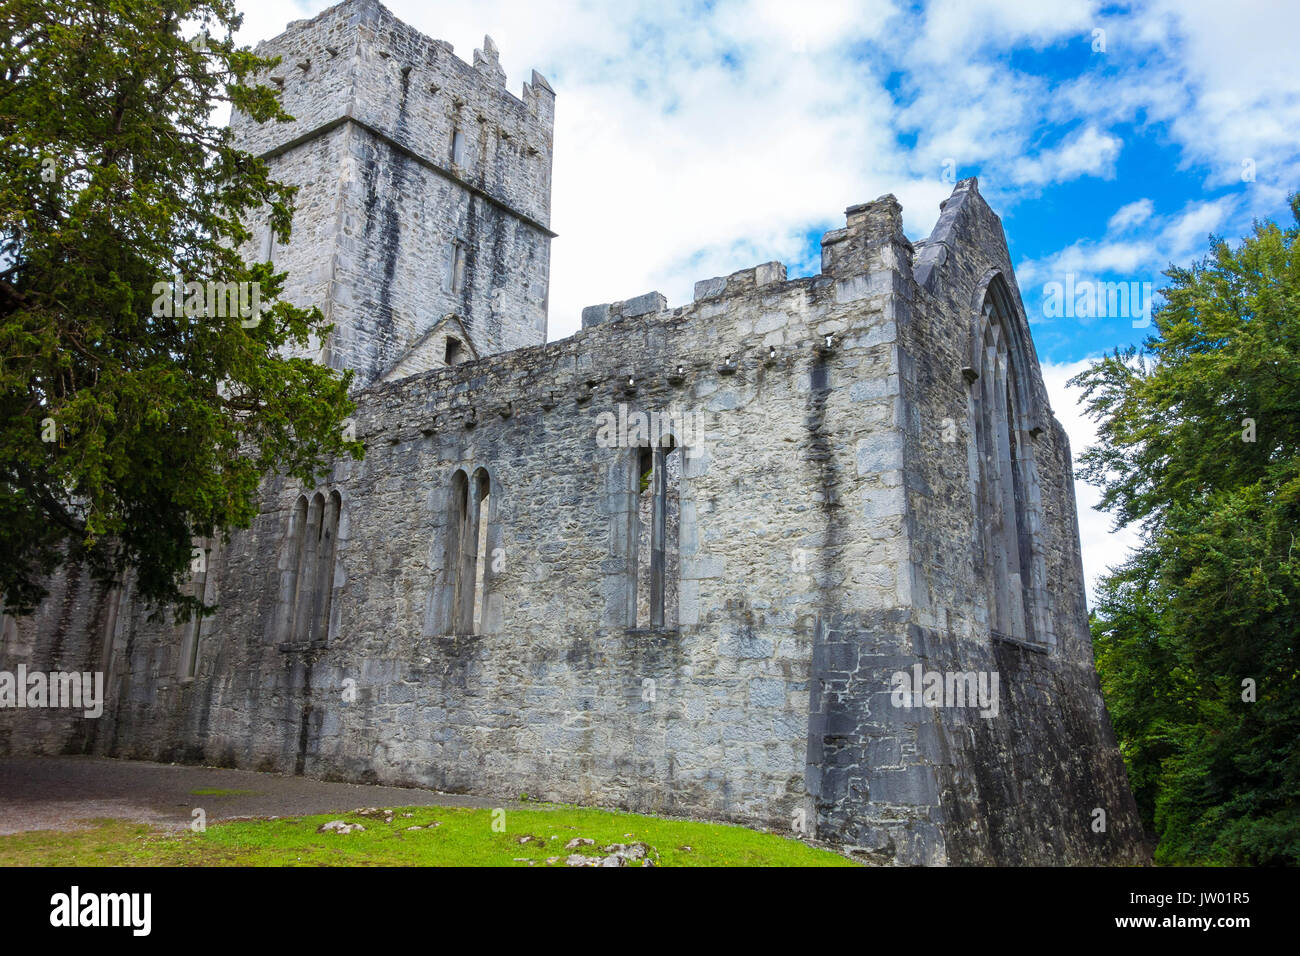 Muckross Abbey built in 1448 as a friary by Franciscan monks - Stock Image